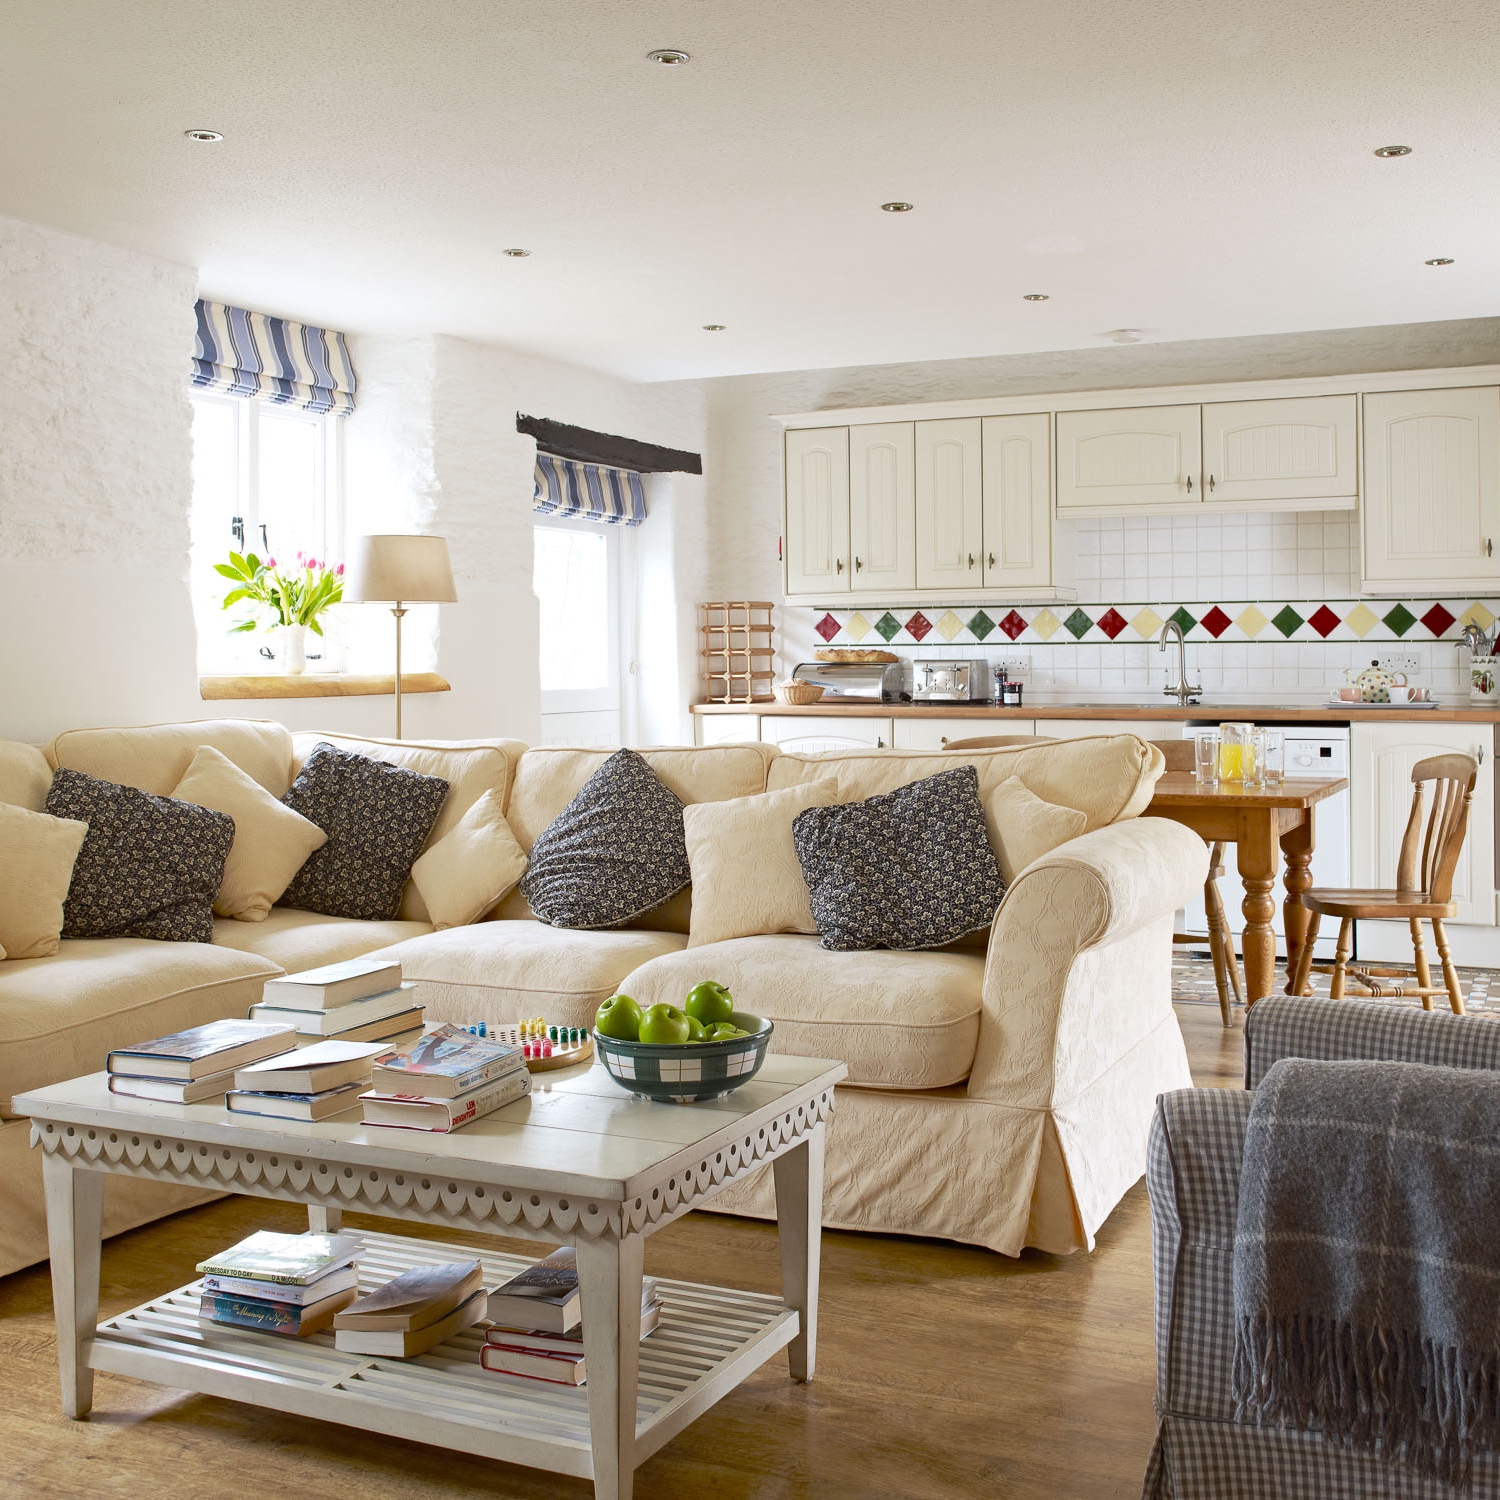 The Stables - Sleeps 6